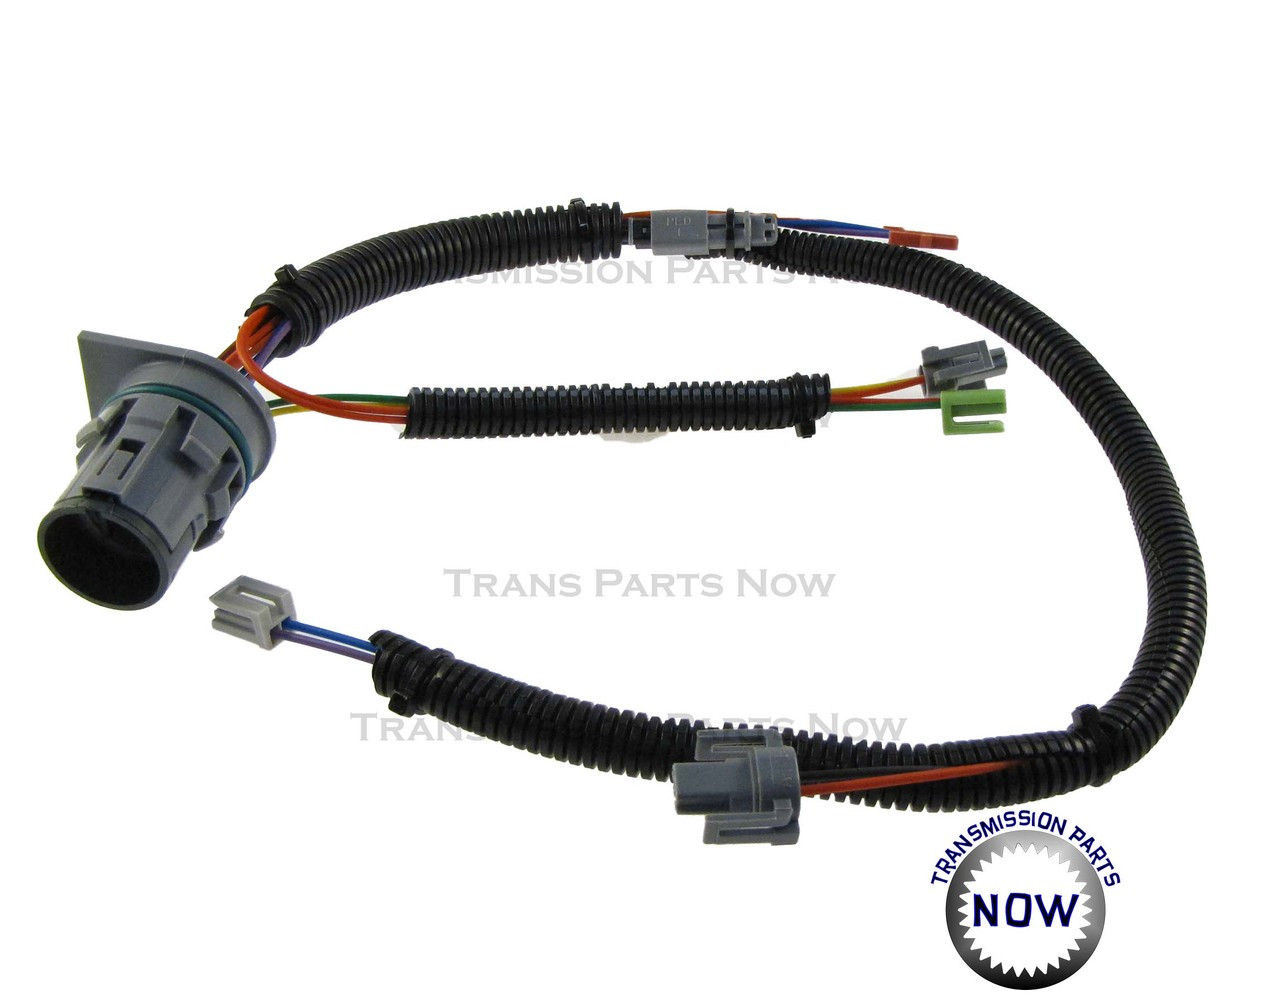 Internal Wire Harness 4L80E 2004-09 34435C on 4l80e harness replacement, psi conversion harness, 4l60e to 4l80e conversion harness, 4l80e controller, 4l80e transmission harness, 4l80e shifter,